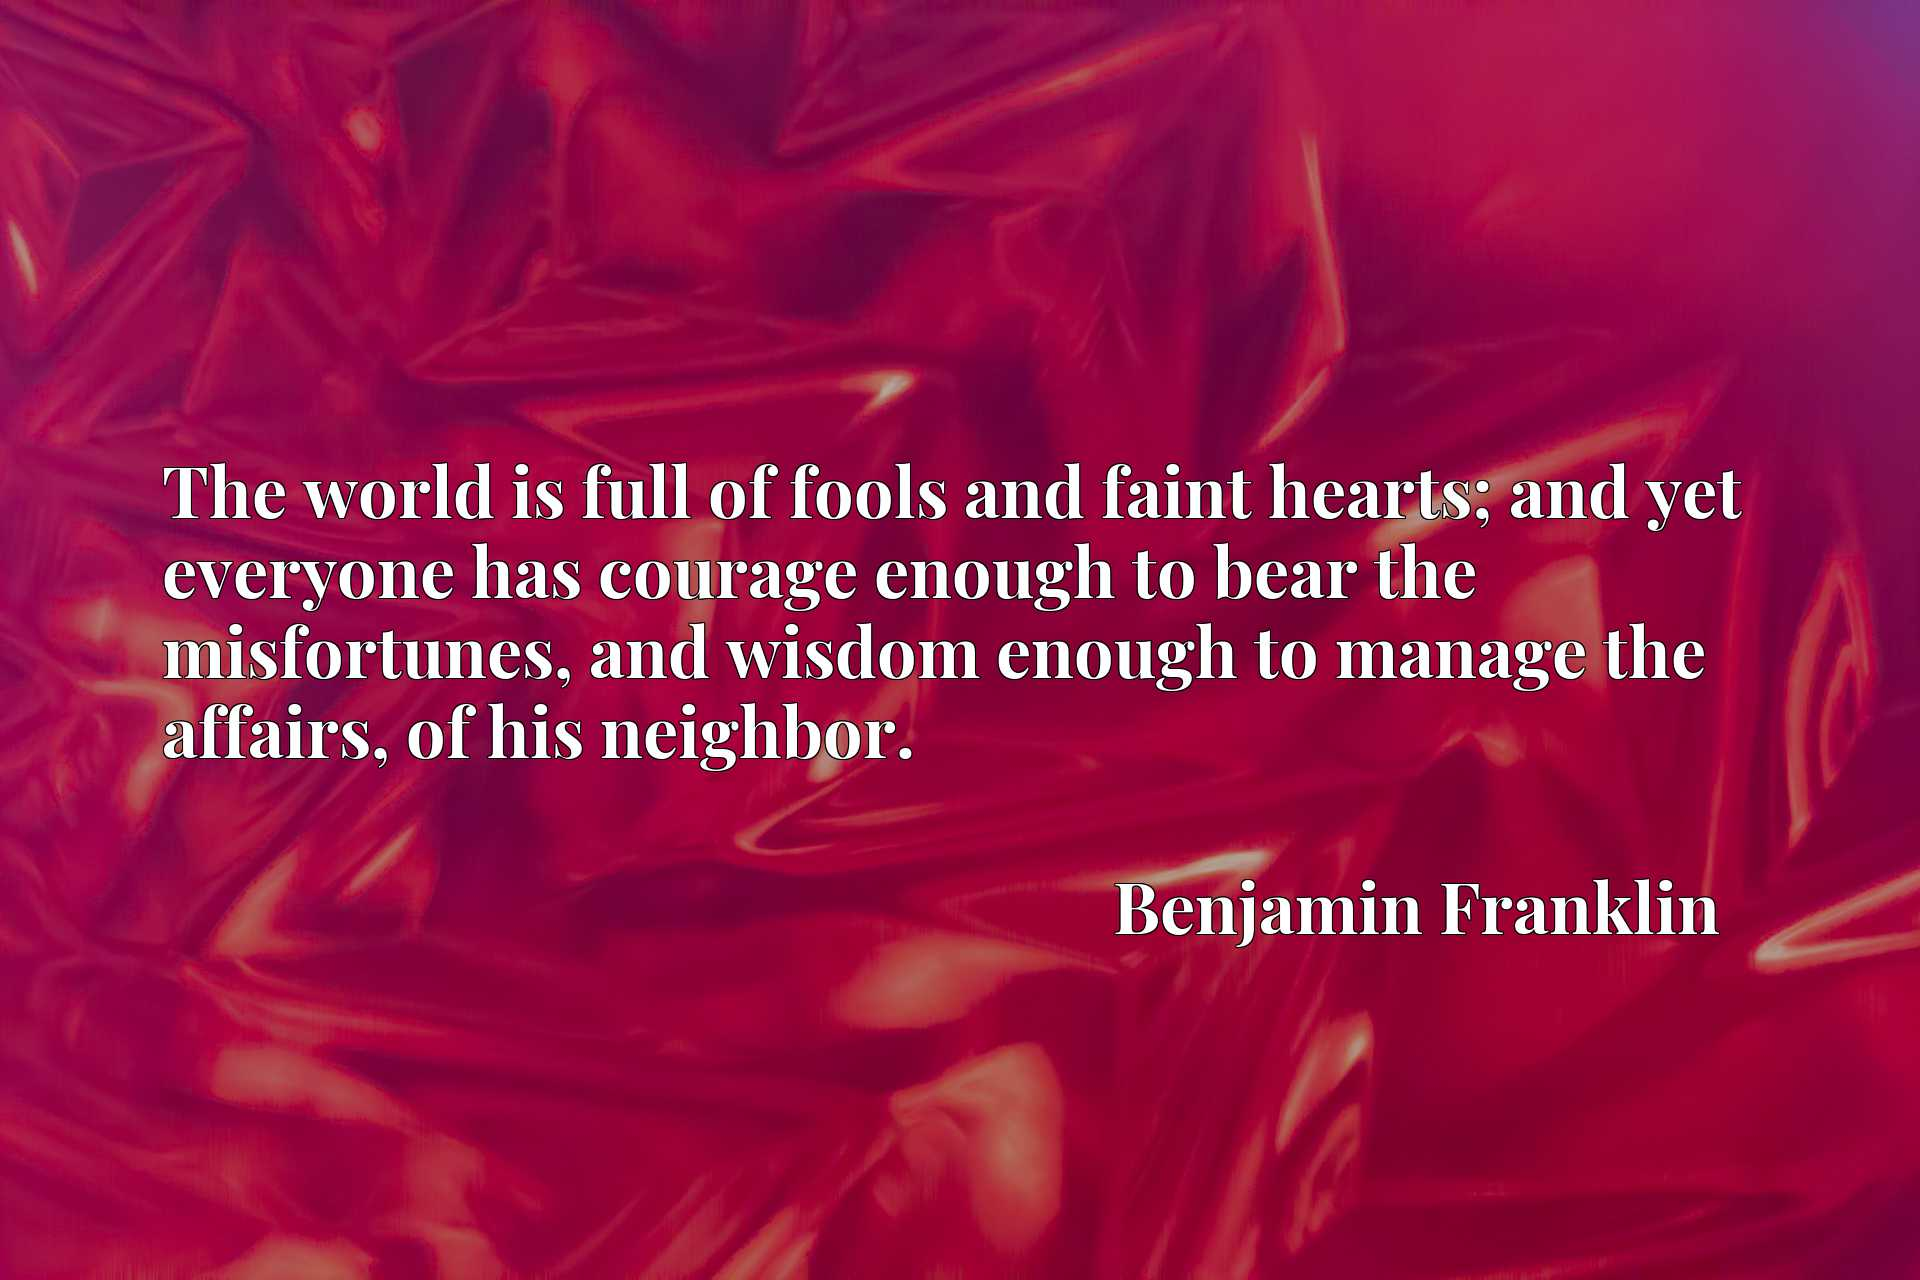 The world is full of fools and faint hearts; and yet everyone has courage enough to bear the misfortunes, and wisdom enough to manage the affairs, of his neighbor.